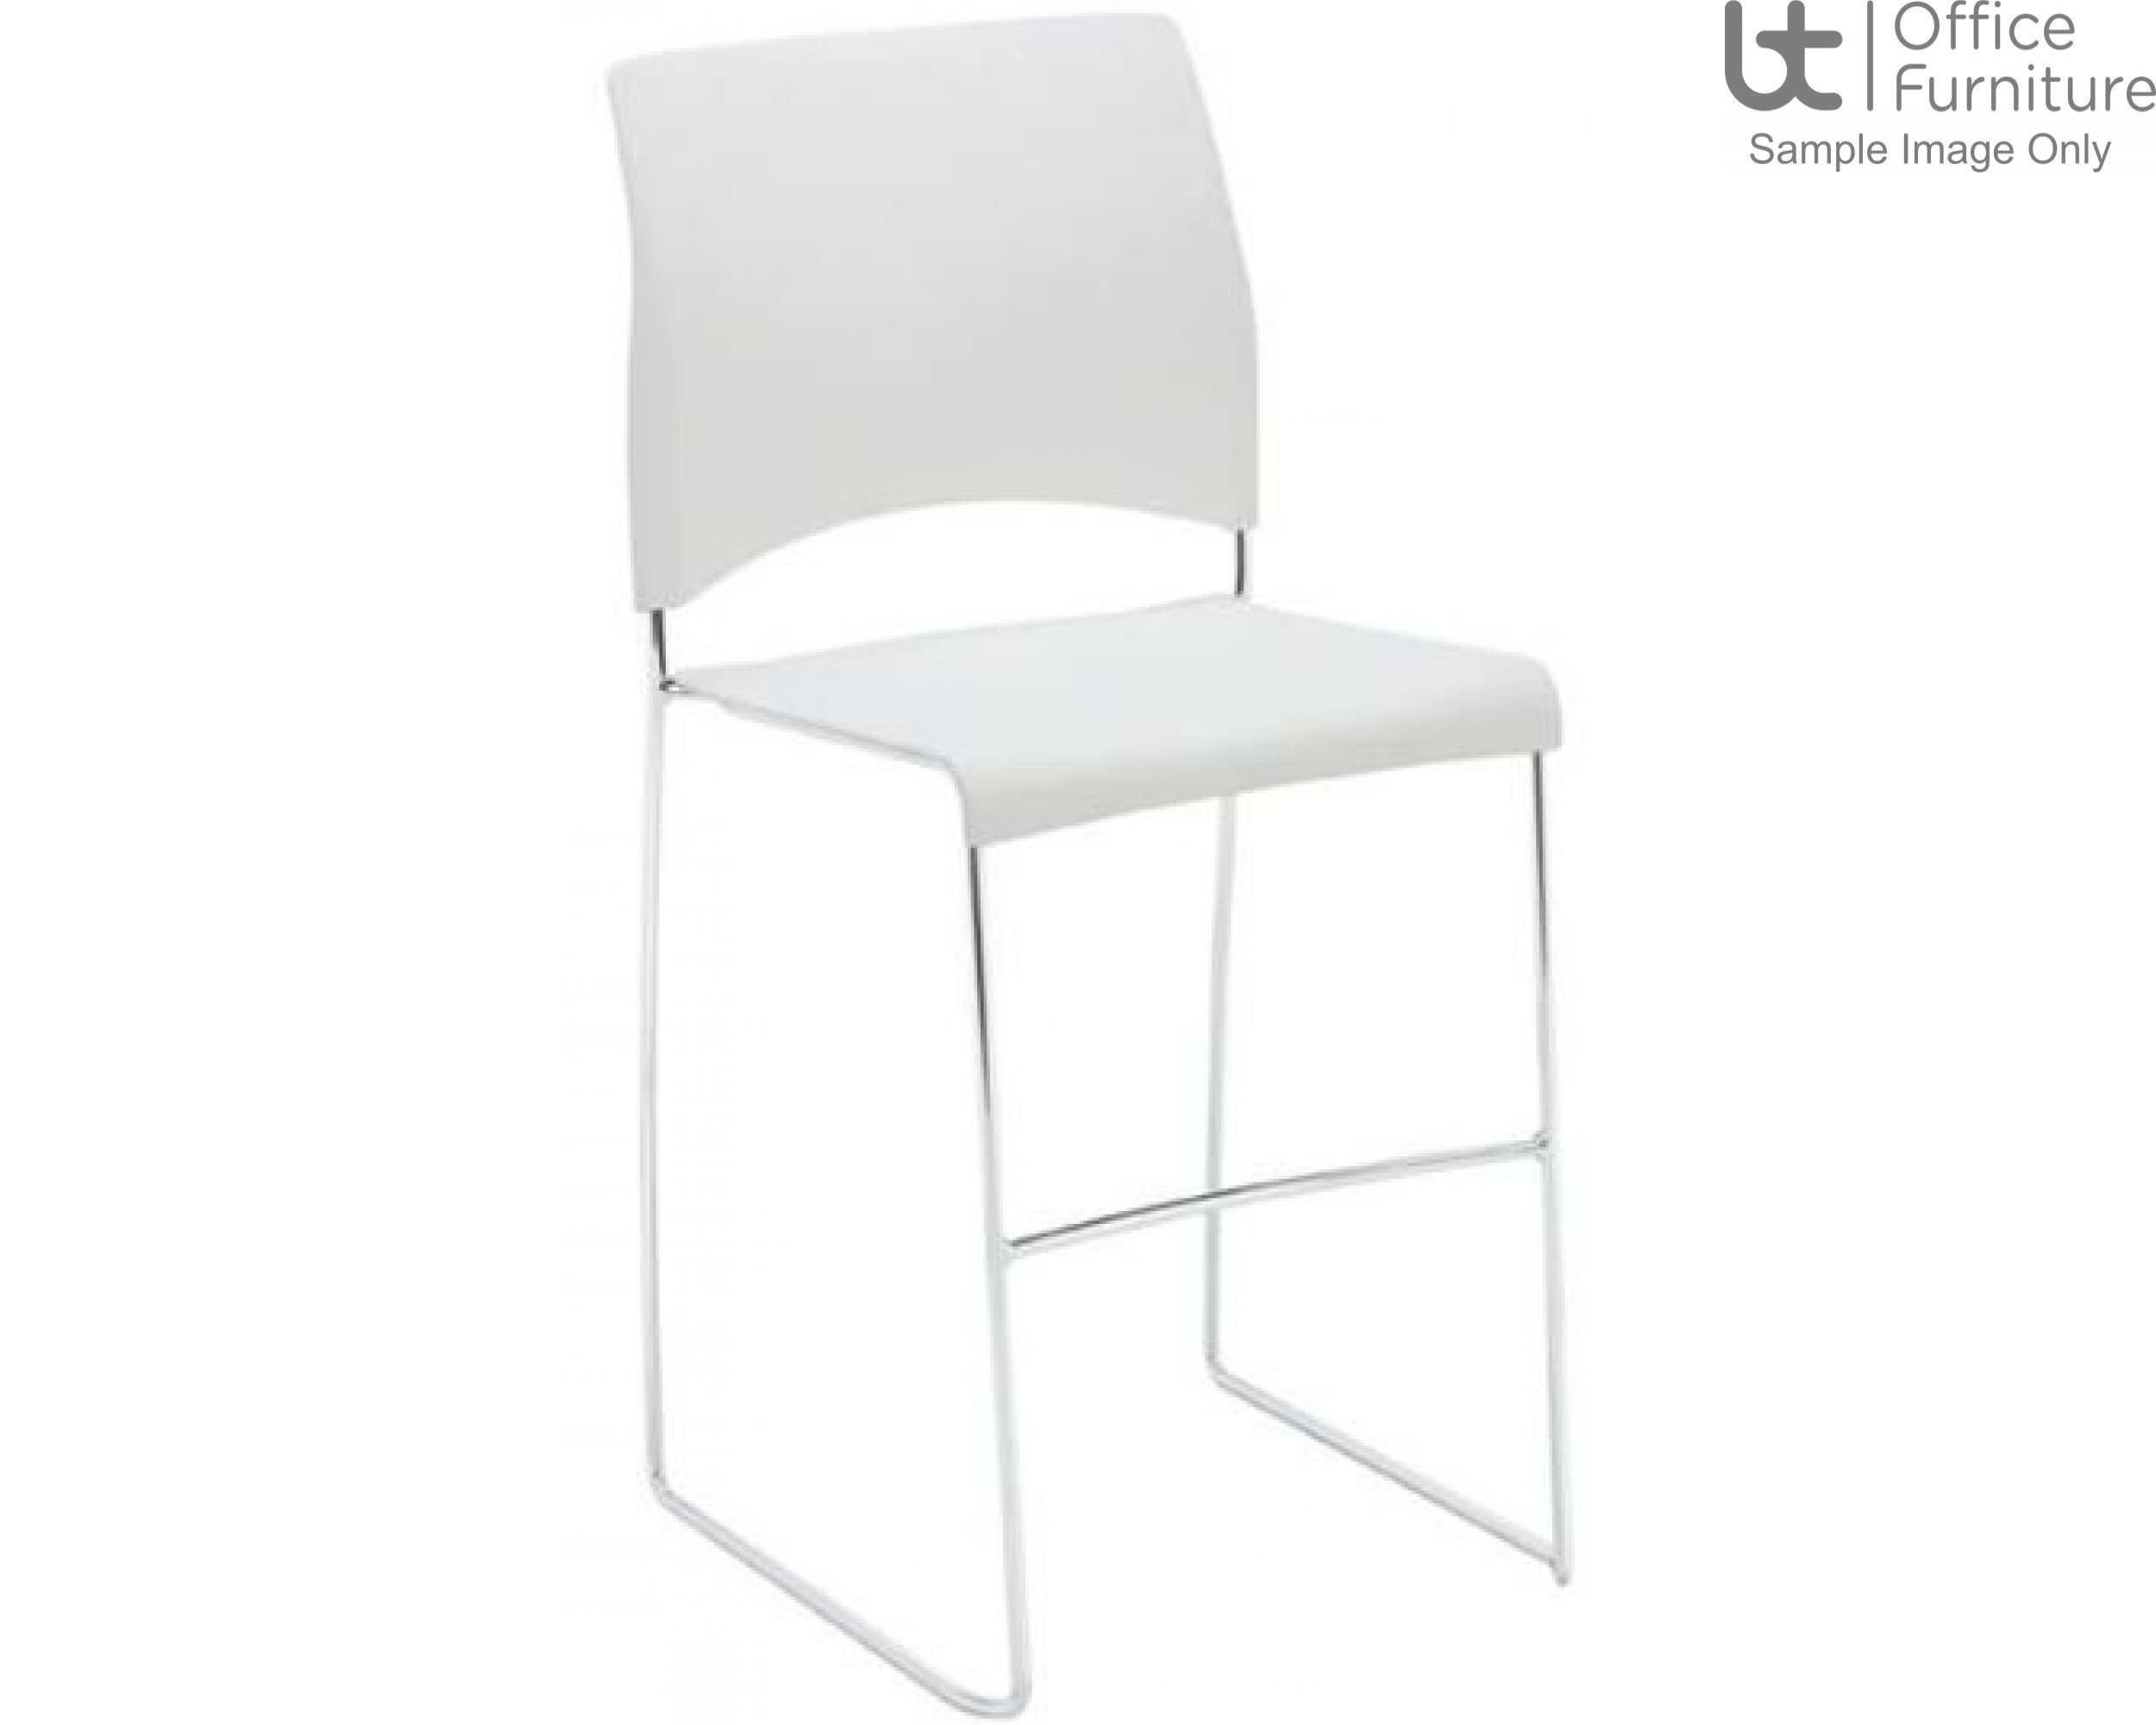 Verco Visitor / Conference Seating - Sting Medium Back Plastic Stacking Mid height Chair